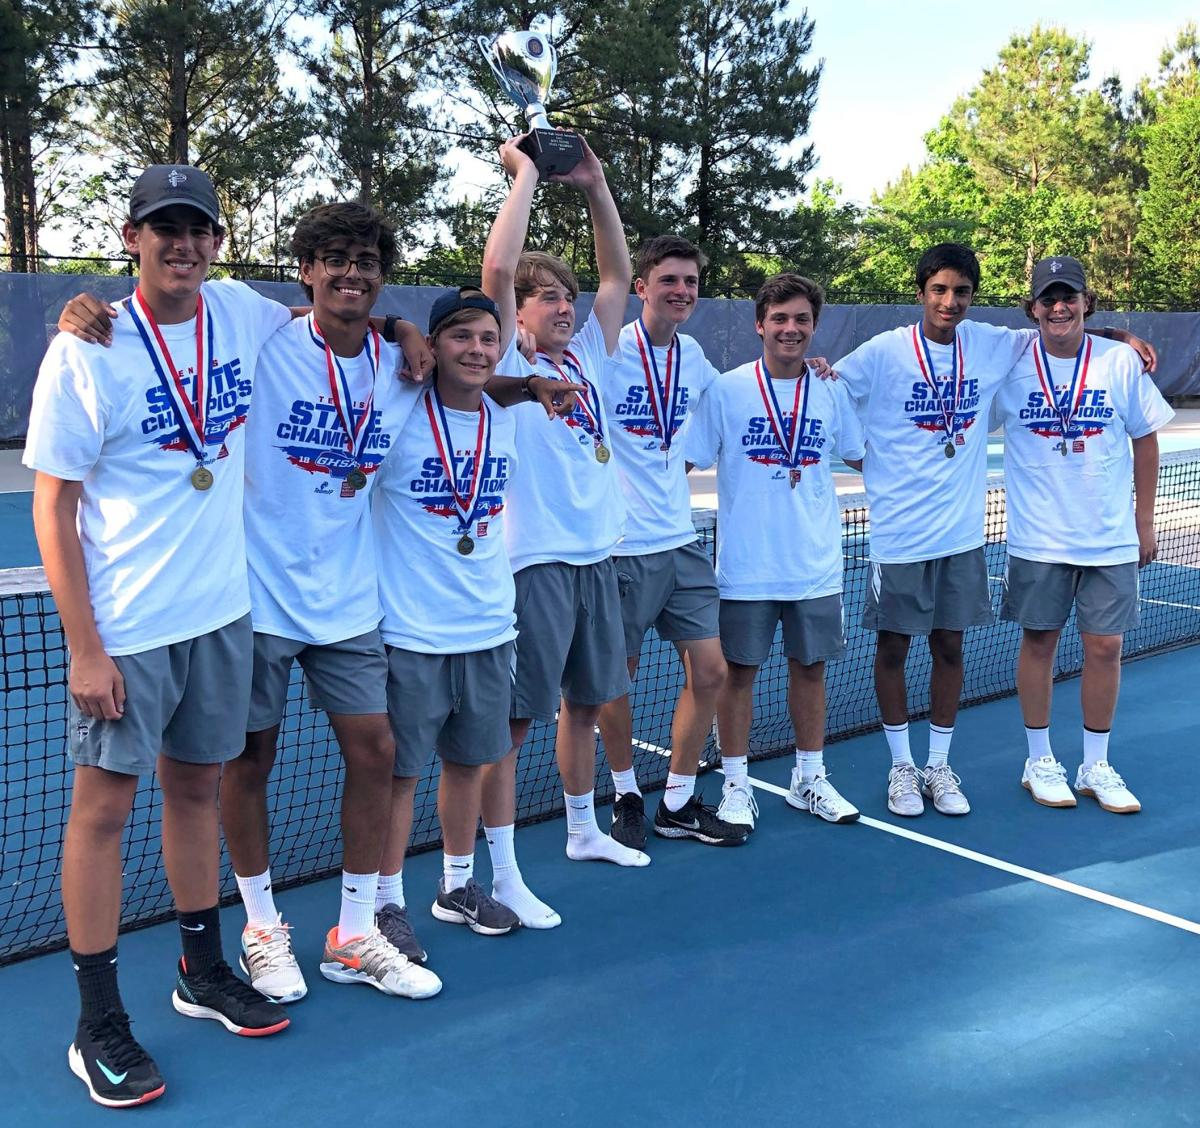 051519_MNS_GOTW_Pace_tennis_state_title_002 group